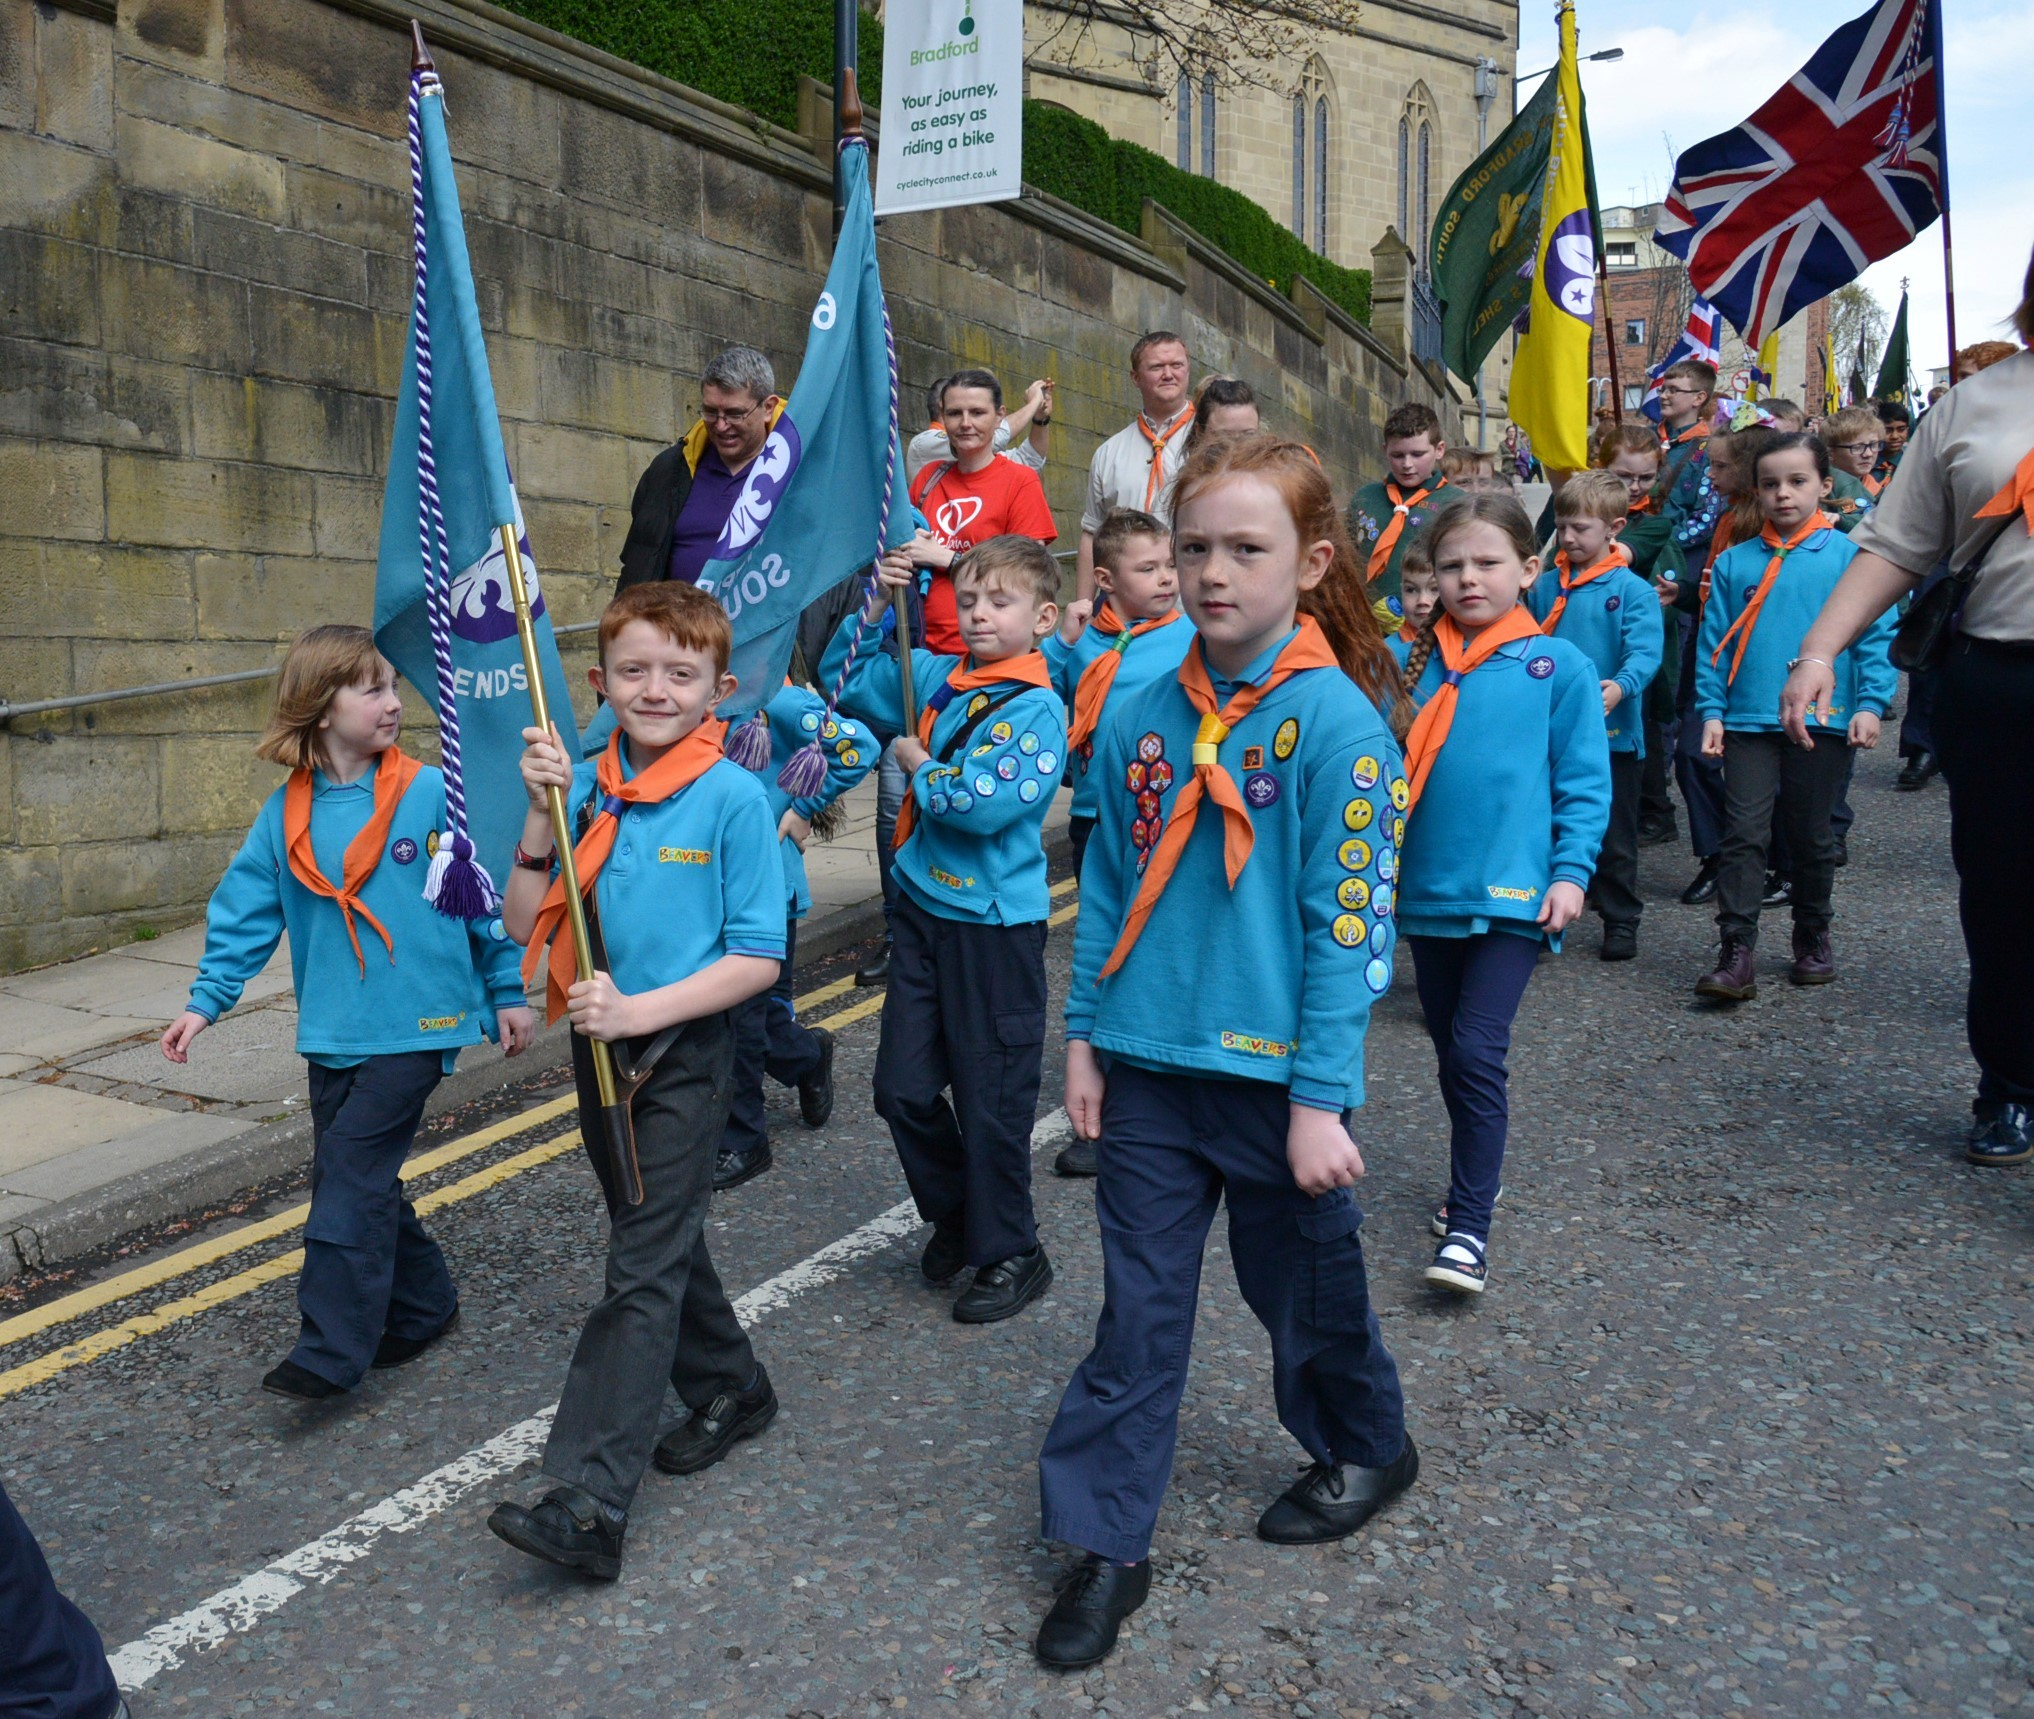 LEADER: Jaxon Green-Moore leads his Beaver group on parade yesterday